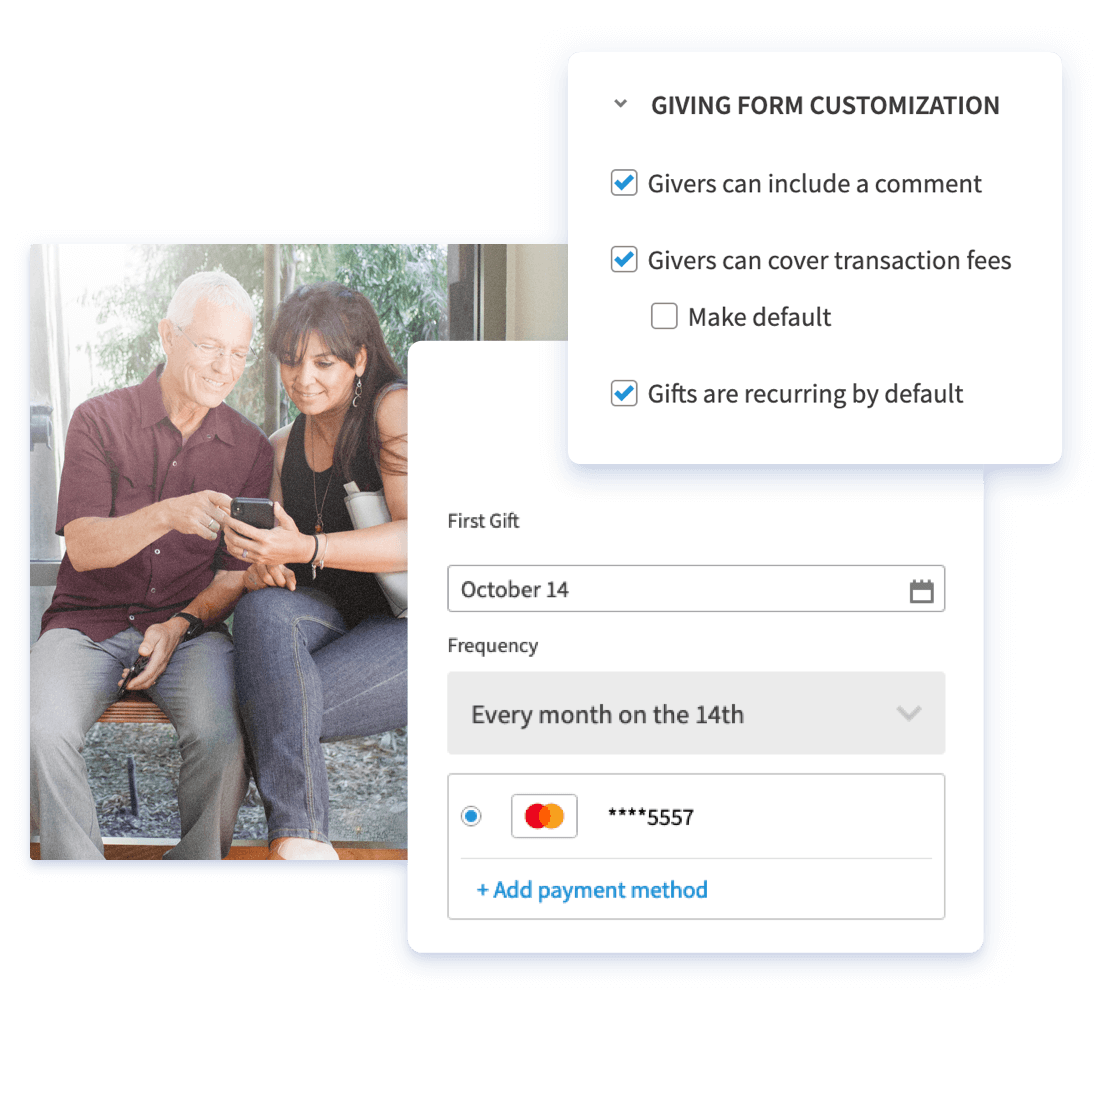 Customizable giving form with recurring giving and giver-covered fees enabled by default